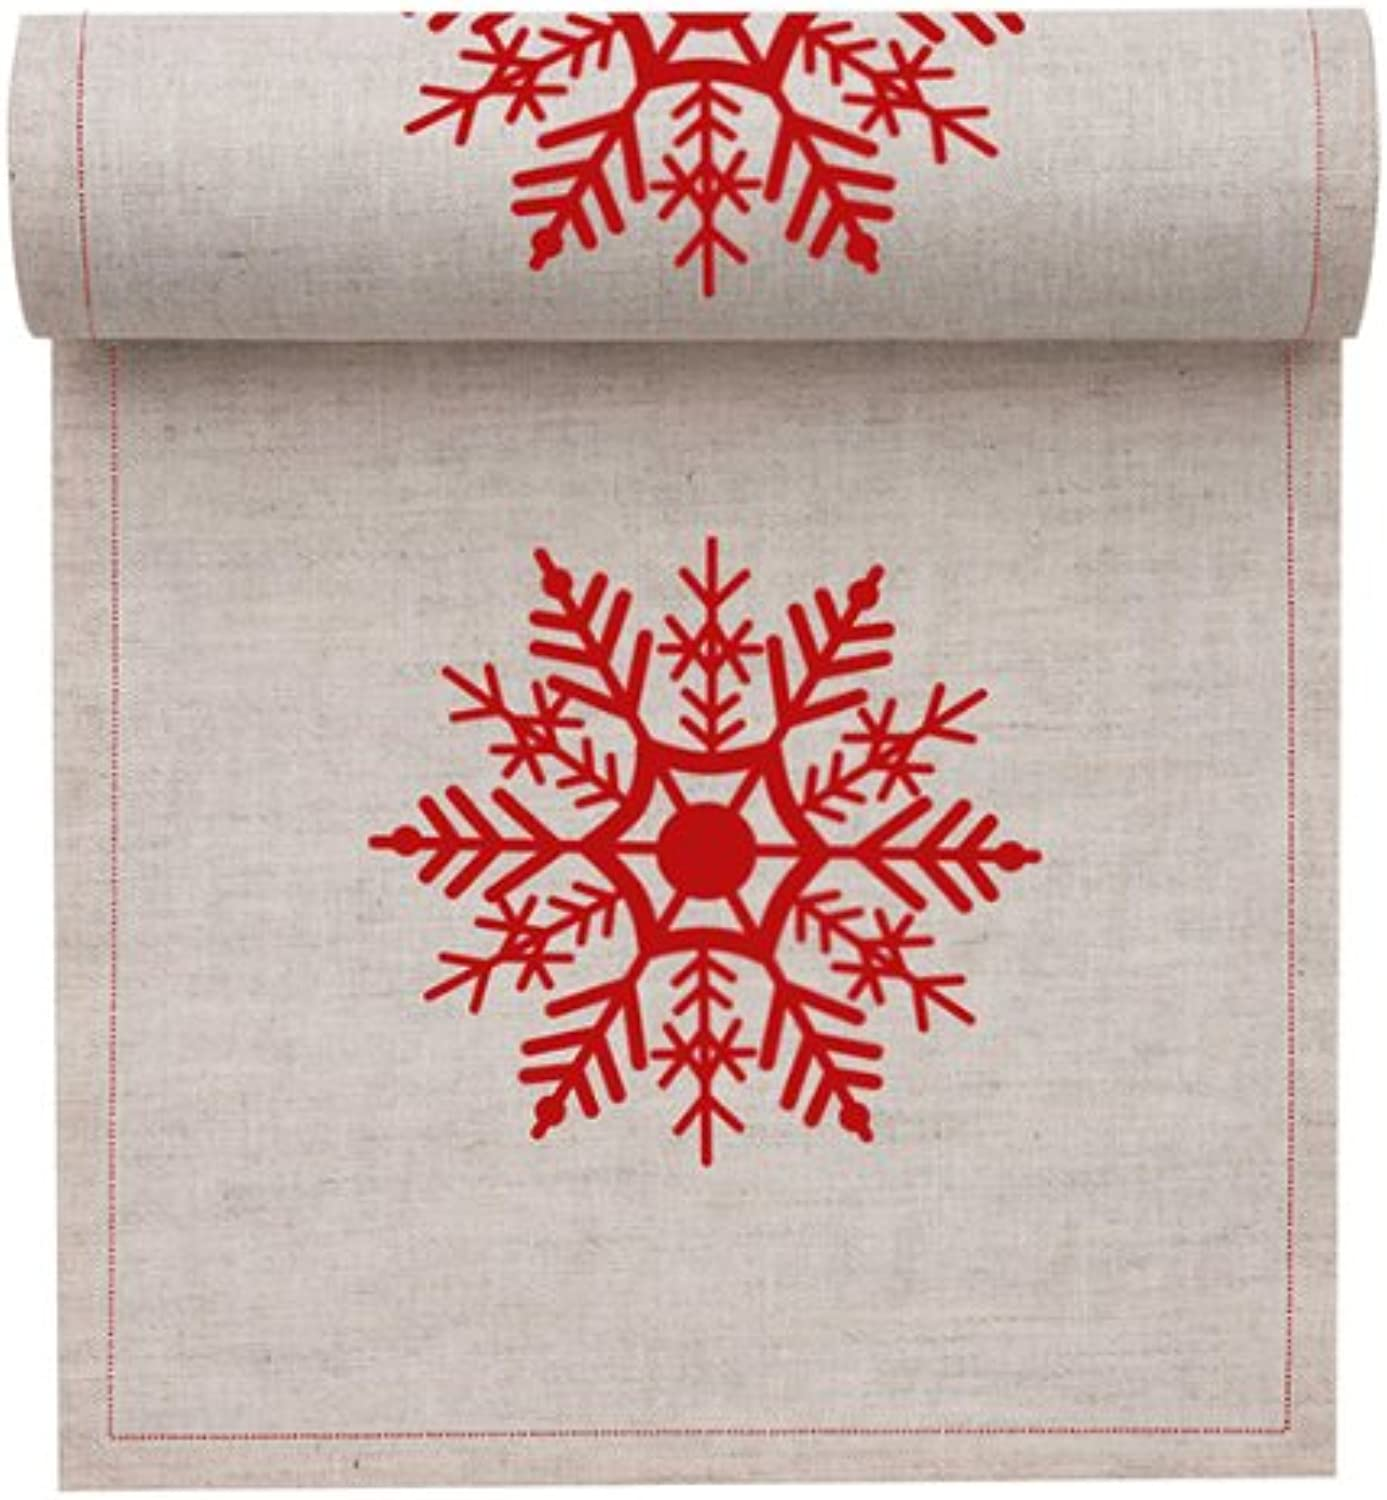 MYdrap SLA11N1 1032 Holiday Printed Cocktail Napkin, 4.5  Length x 4.5  Width, Natural with Red Snowflake (10 Rolls of 50)